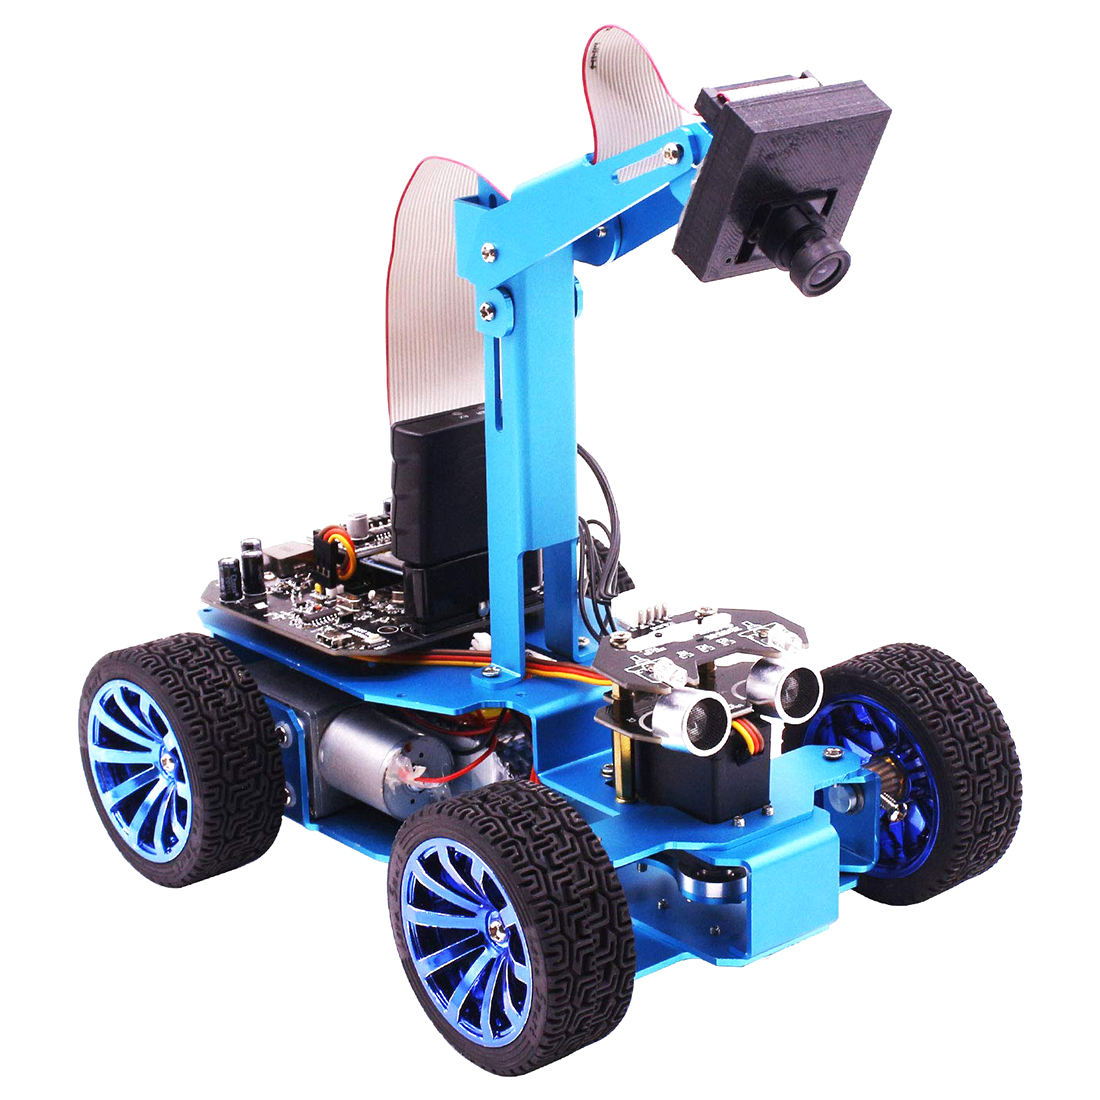 STM32 Visual Robot OV7670 Camera Tracking OLED Screen Independent Steering Robotics High-Power Motor Creative Gift 1